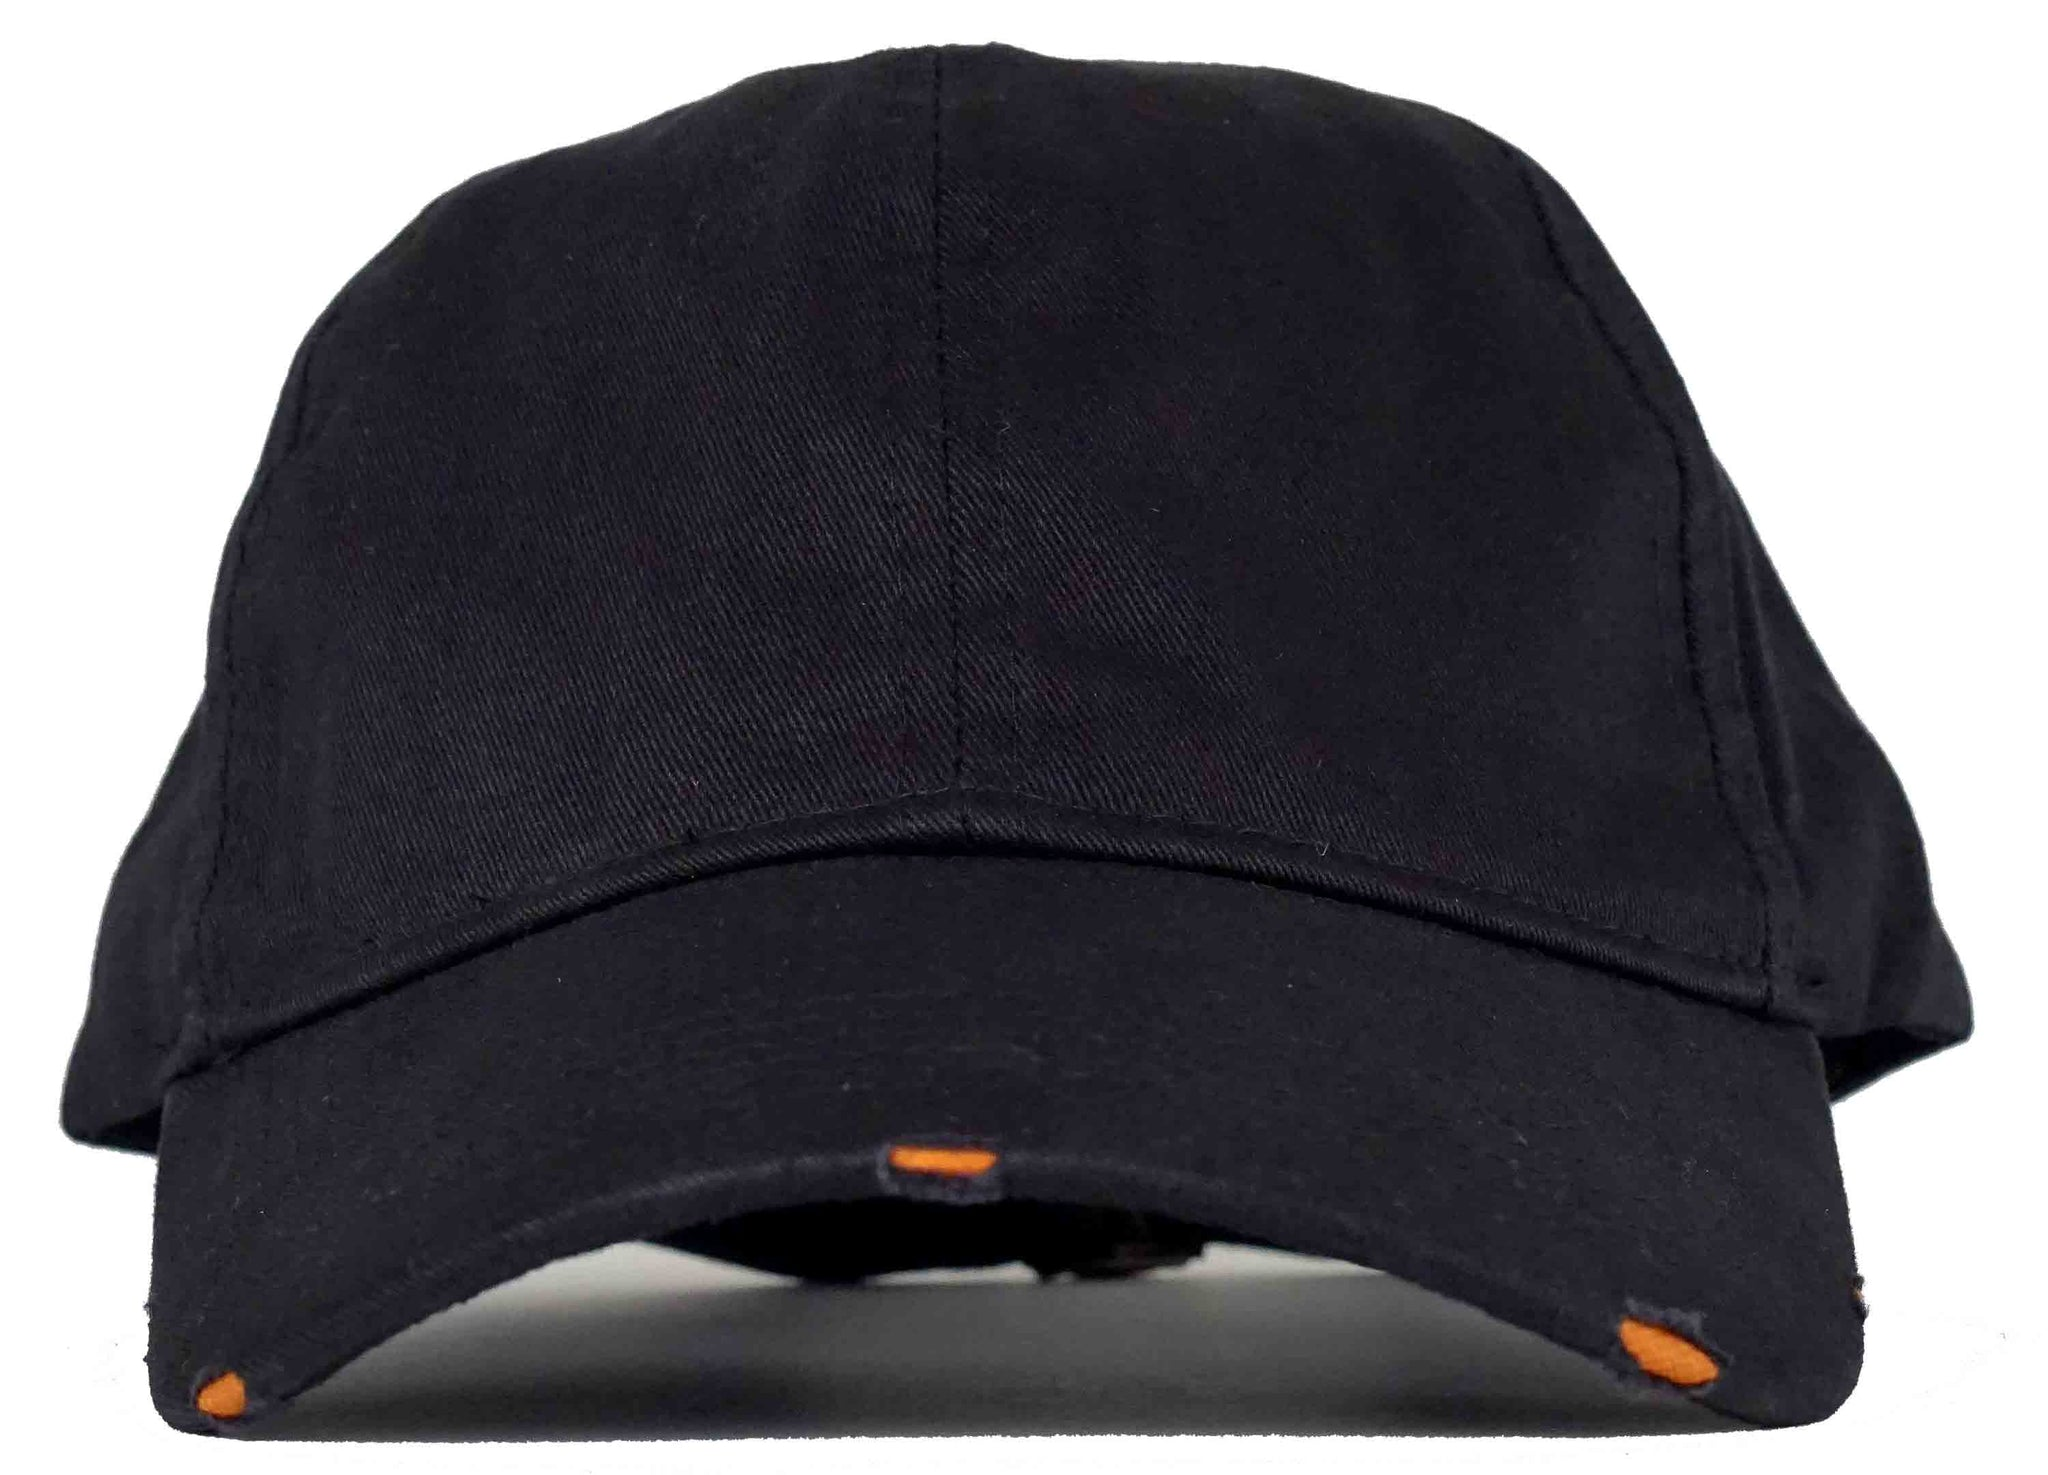 ... Plain hats plain dad hats casual hats head crack nyc ... 2dcbdffc589